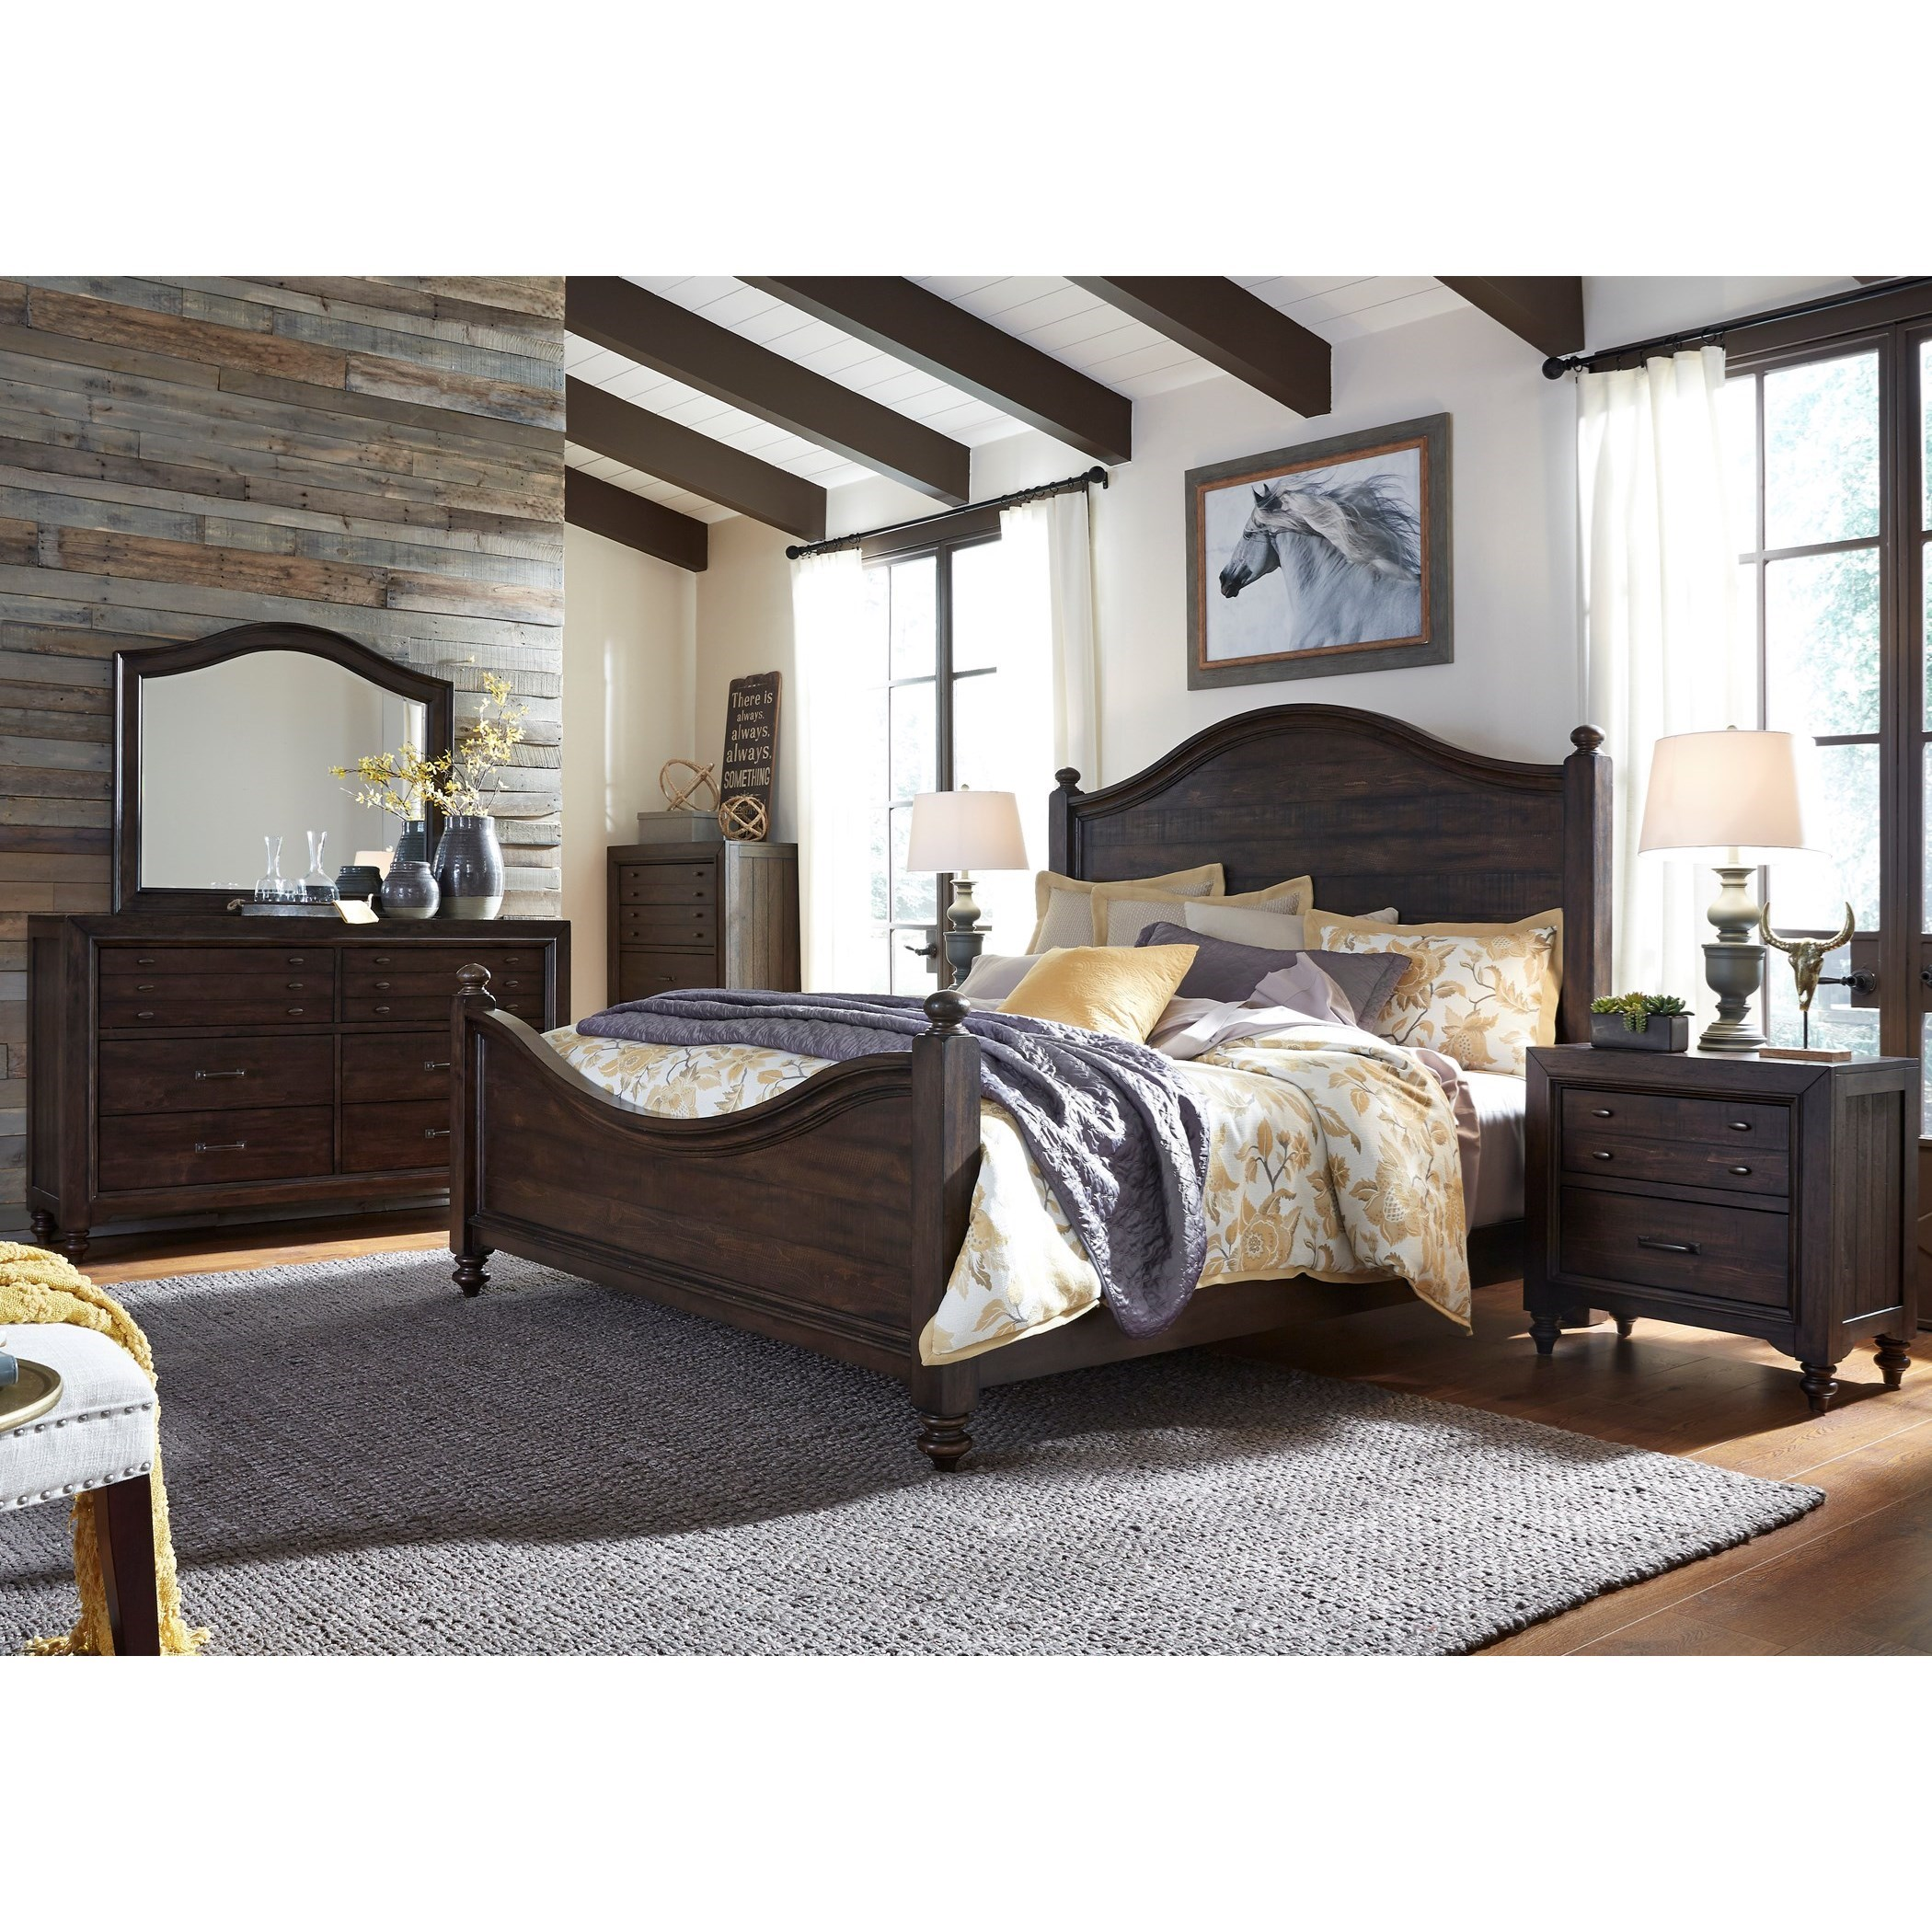 Catawba Hills Bedroom Queen Poster Bed Bedroom Group by Libby at Walker's Furniture